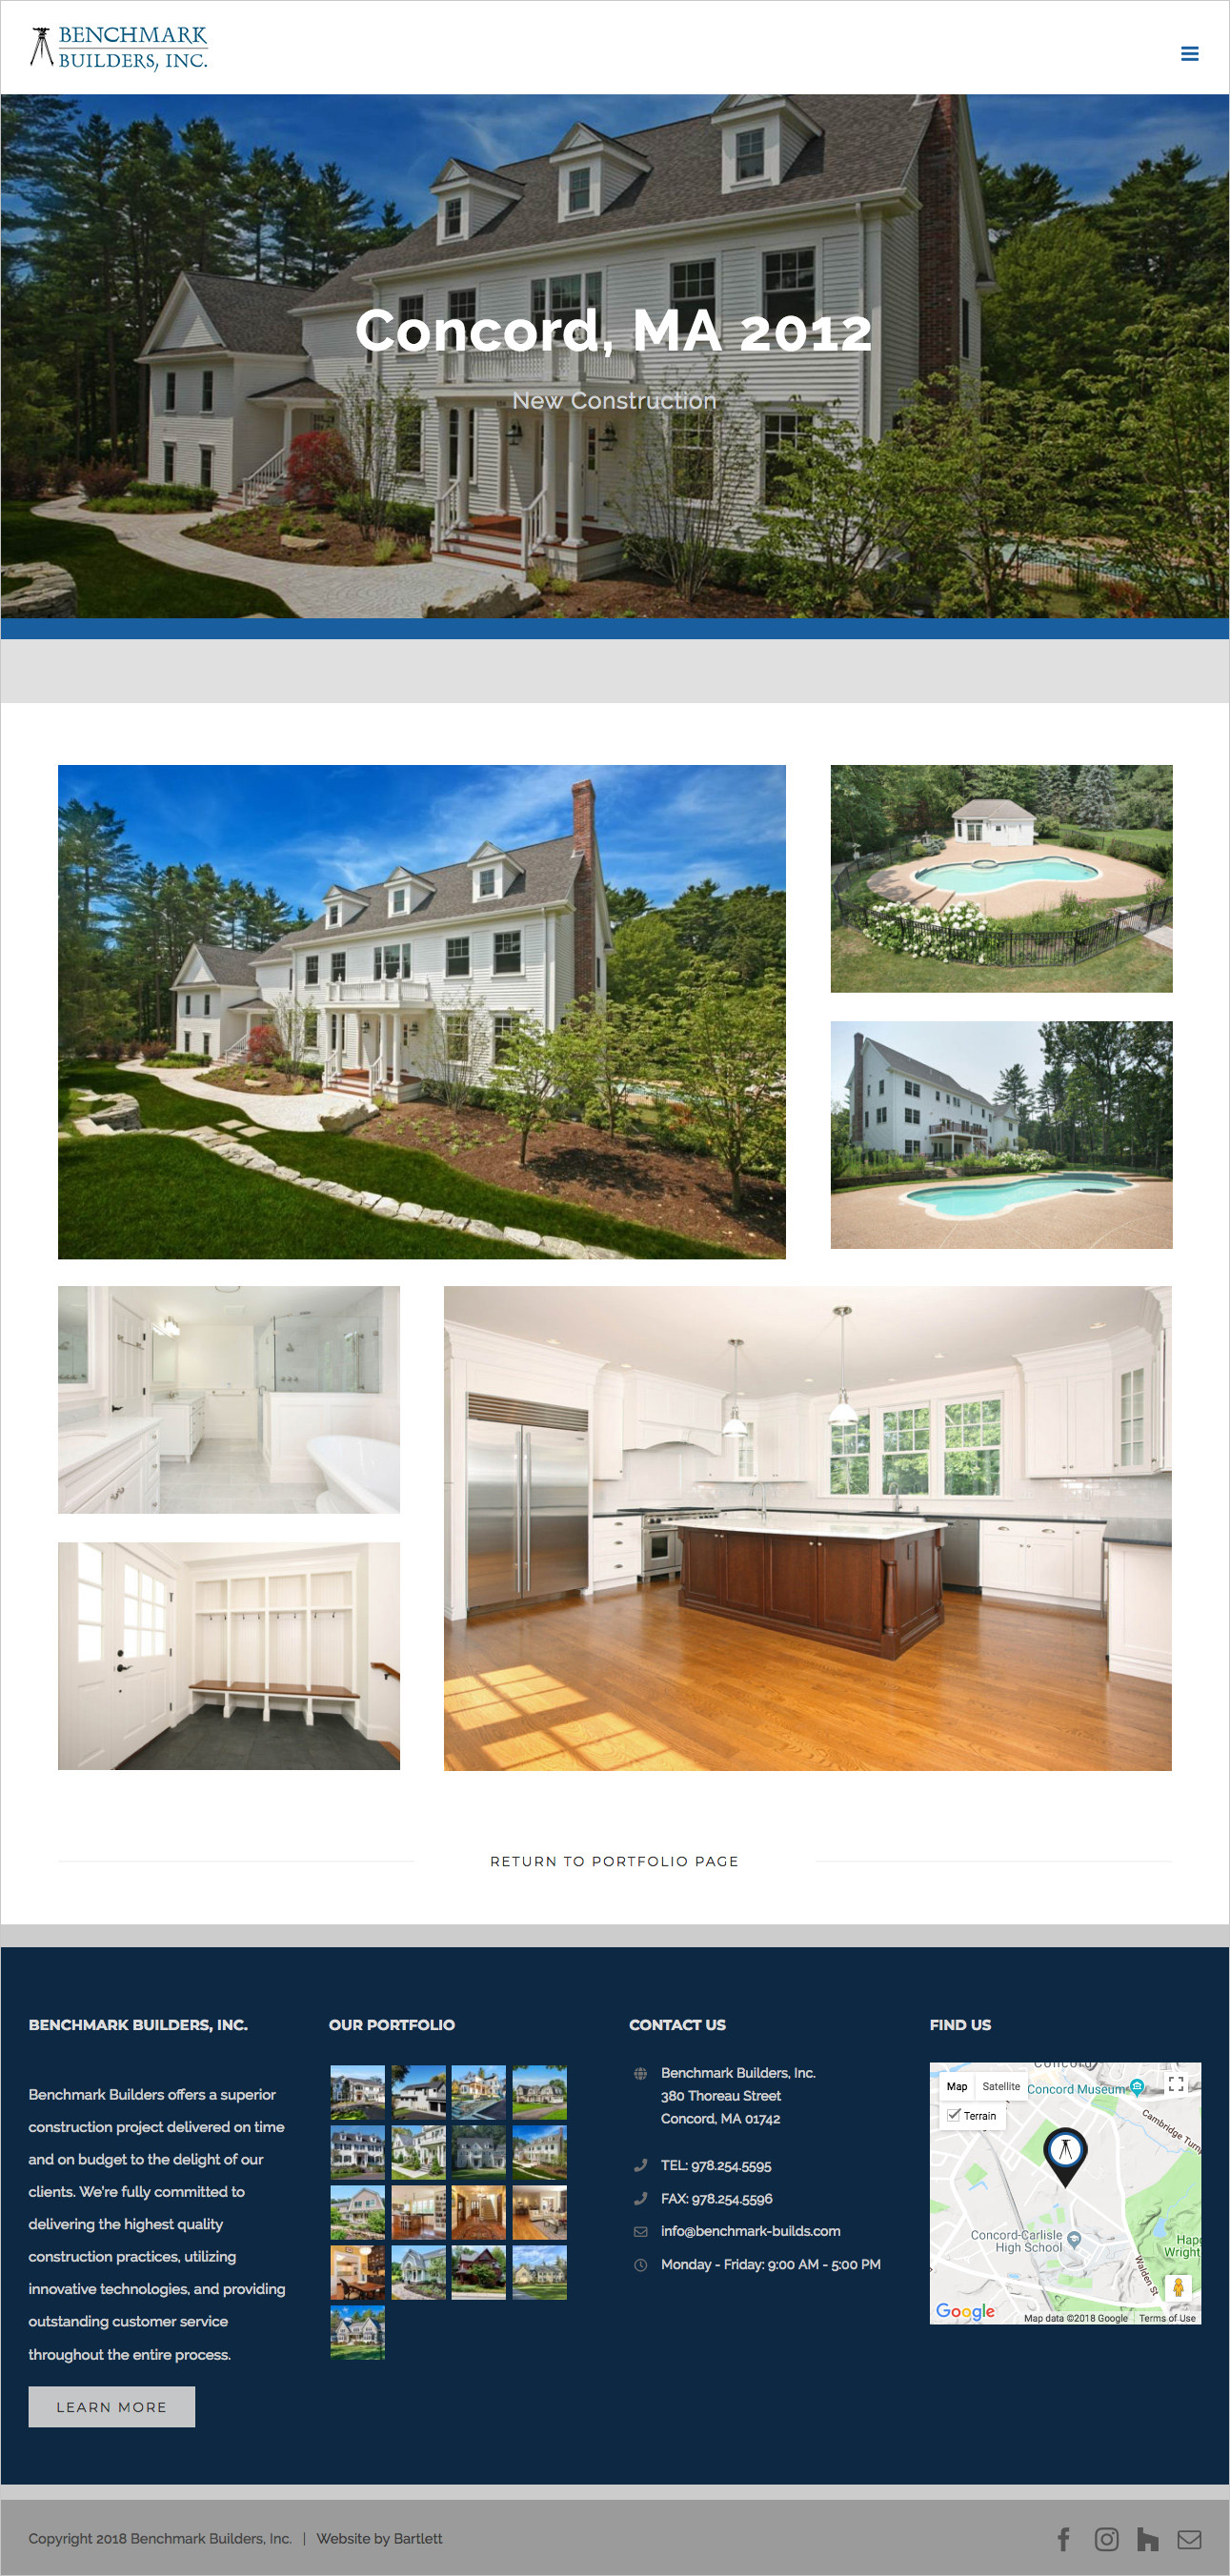 FireShot Capture 166 - Concord, MA 2012 – Benchmark Builders_ - http___benchmark.bartlettinteracti_0.jpg